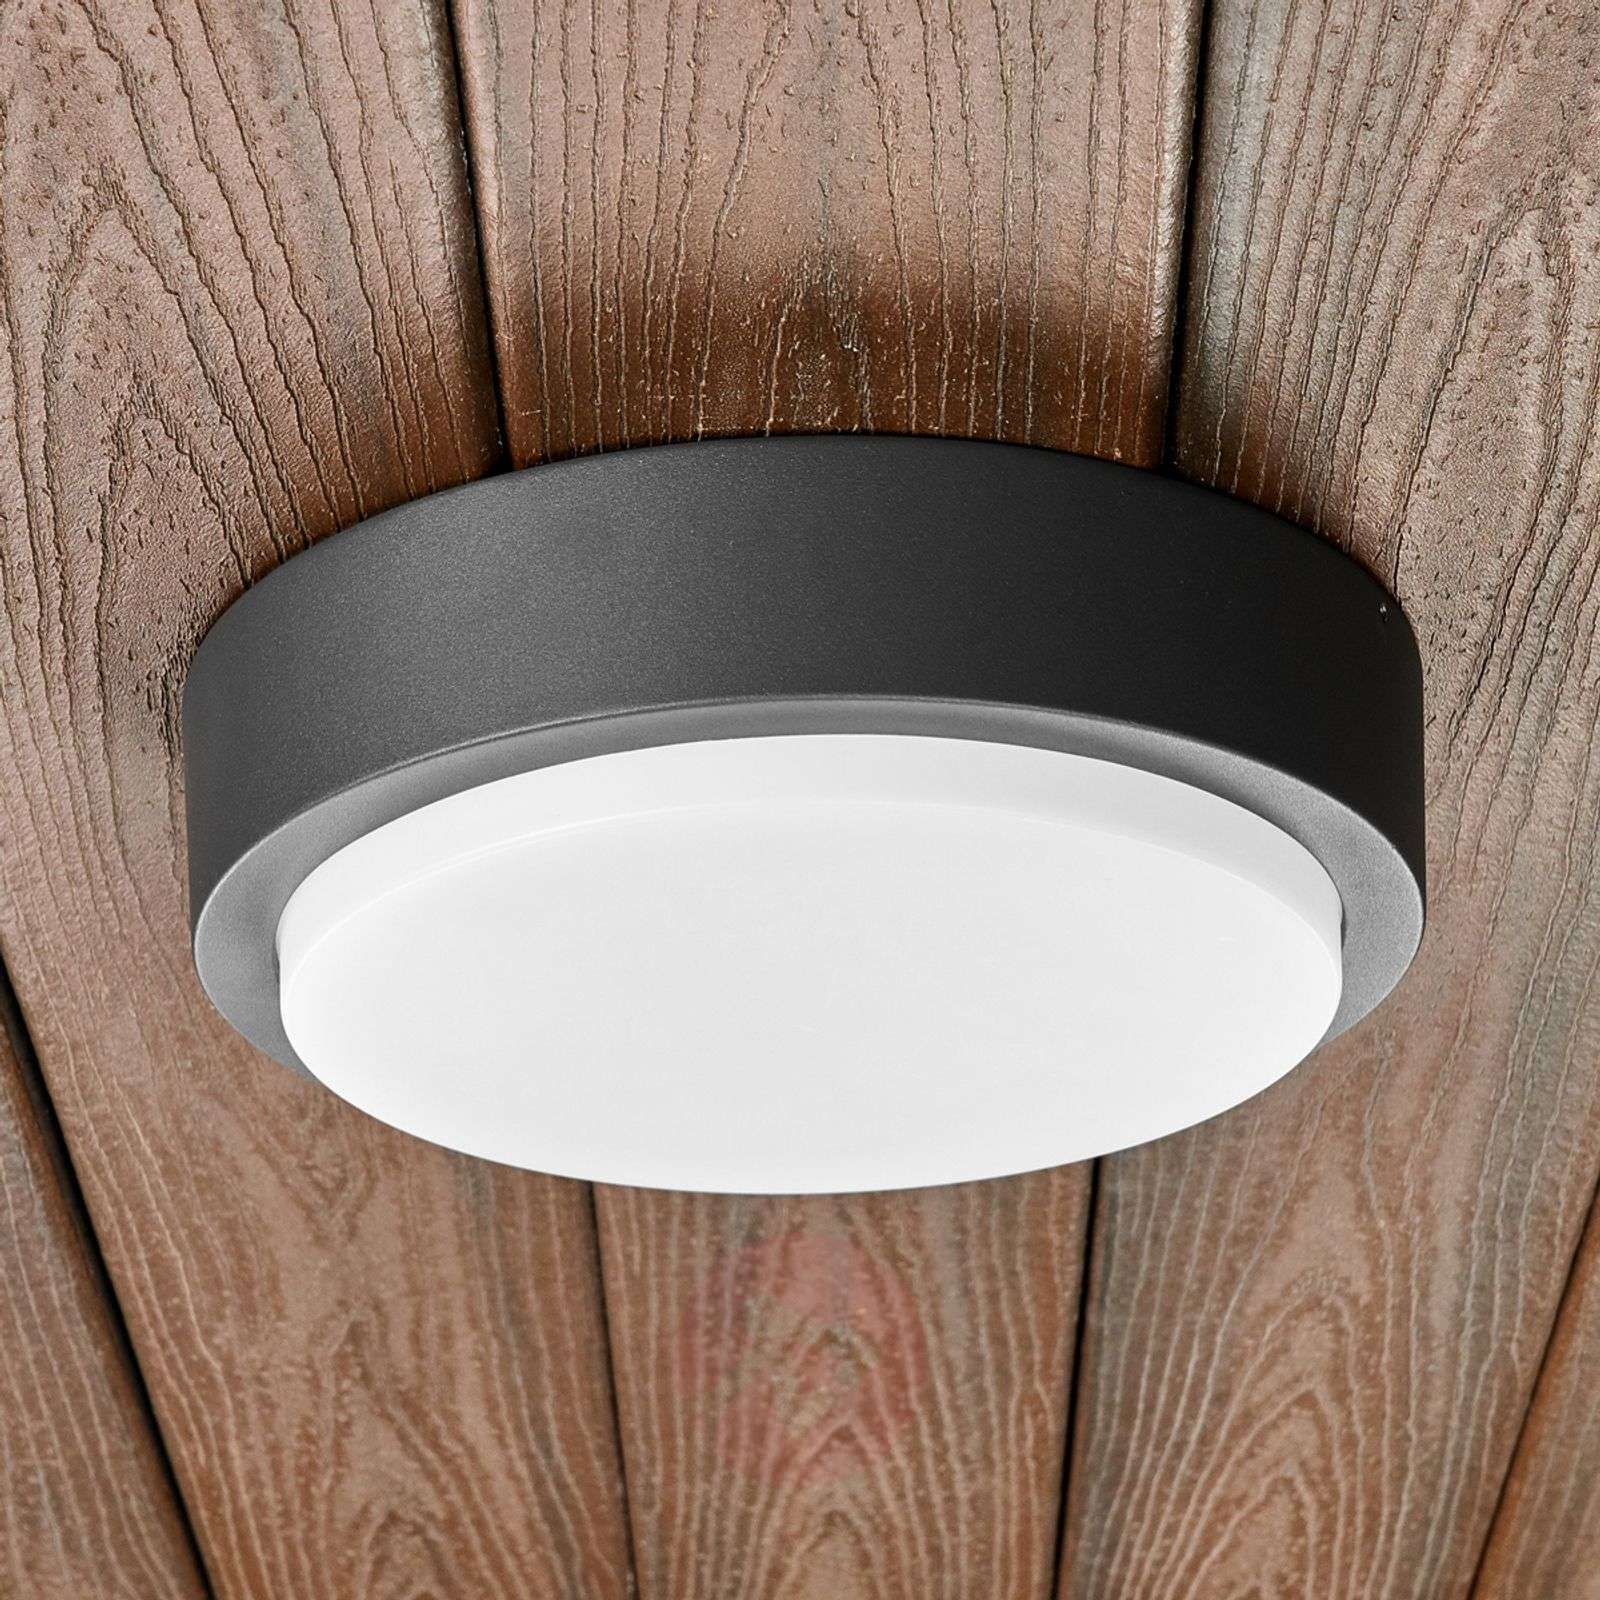 Round Led Outdoor Wall Light Maxine 9955002 02